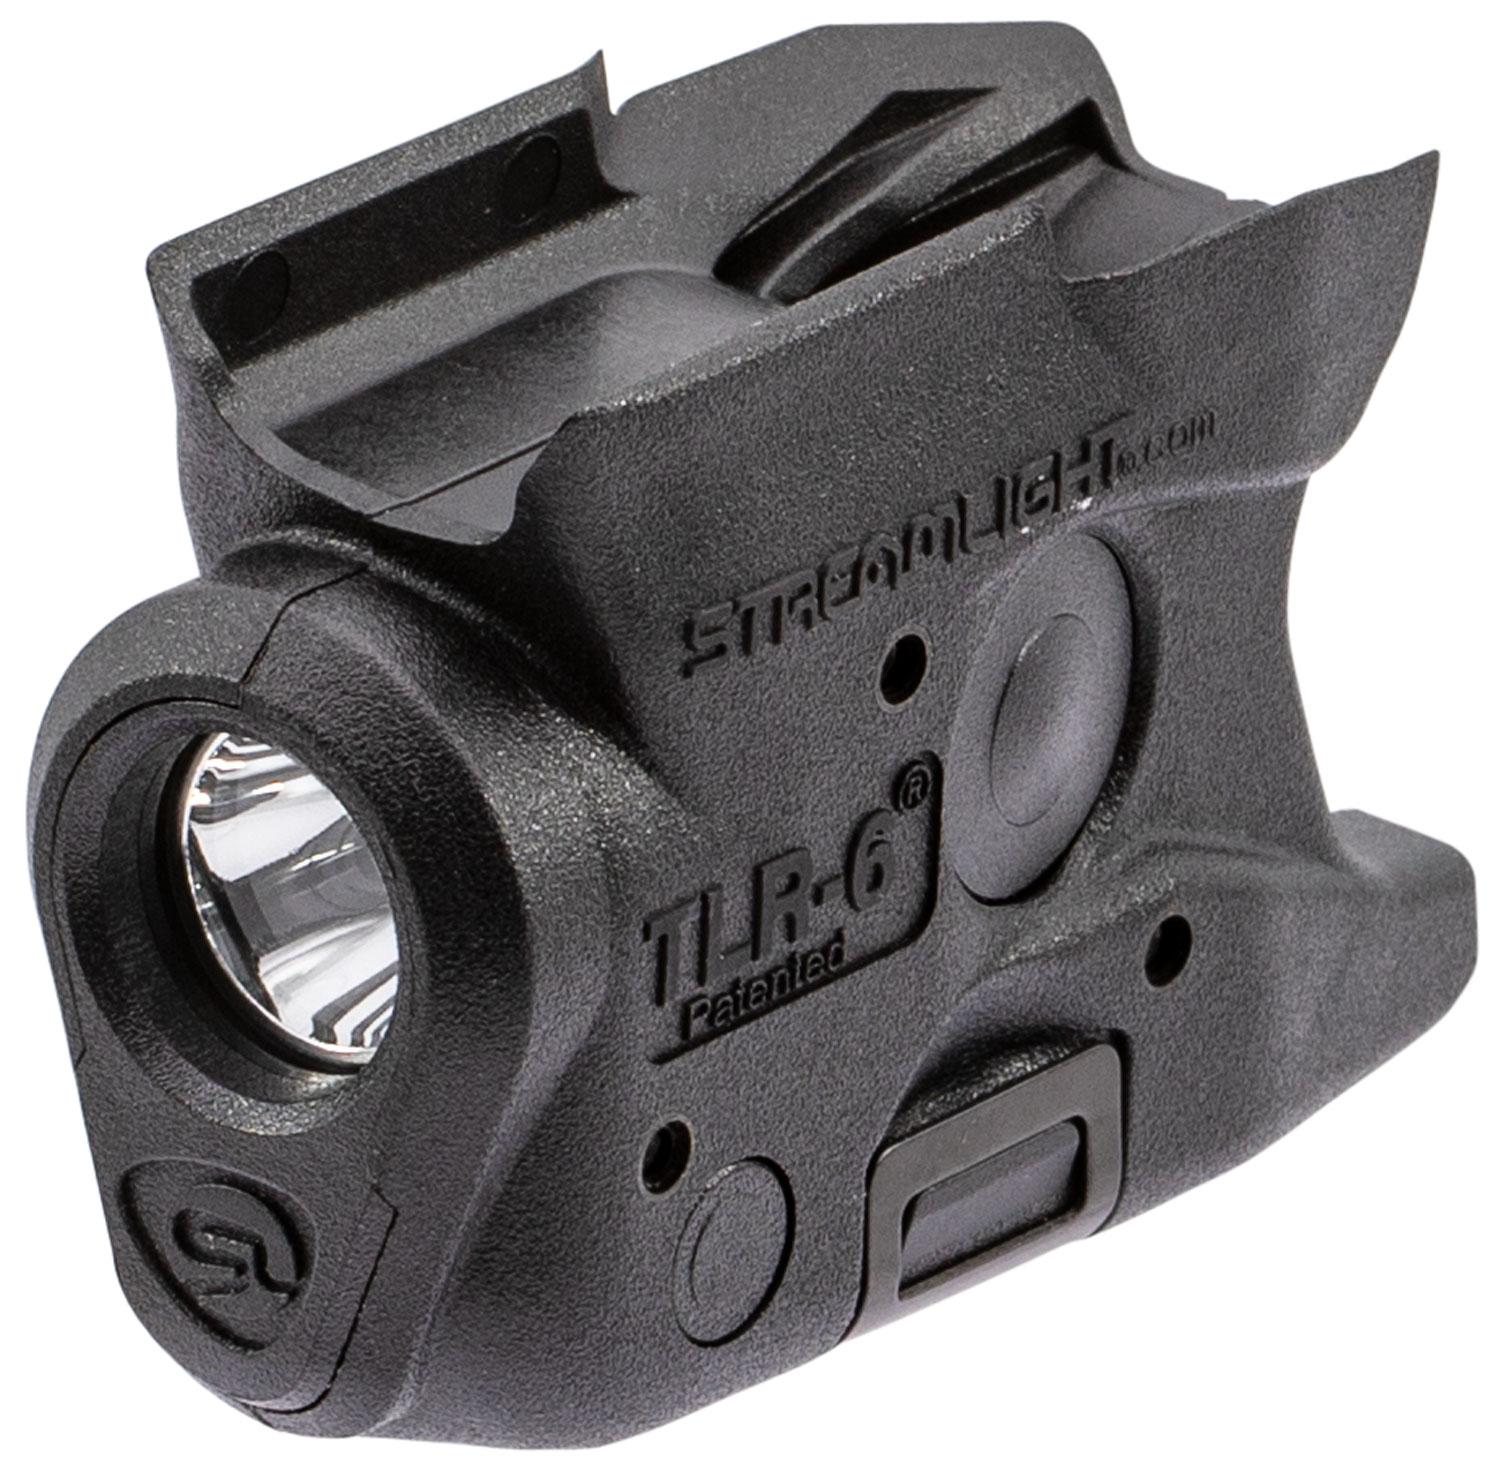 Streamlight 69283 TLR-6 Weapon Light for S&W M&P Shield White LED 100 Lumens 1/3N Lithium Battery Black Polymer No Laser